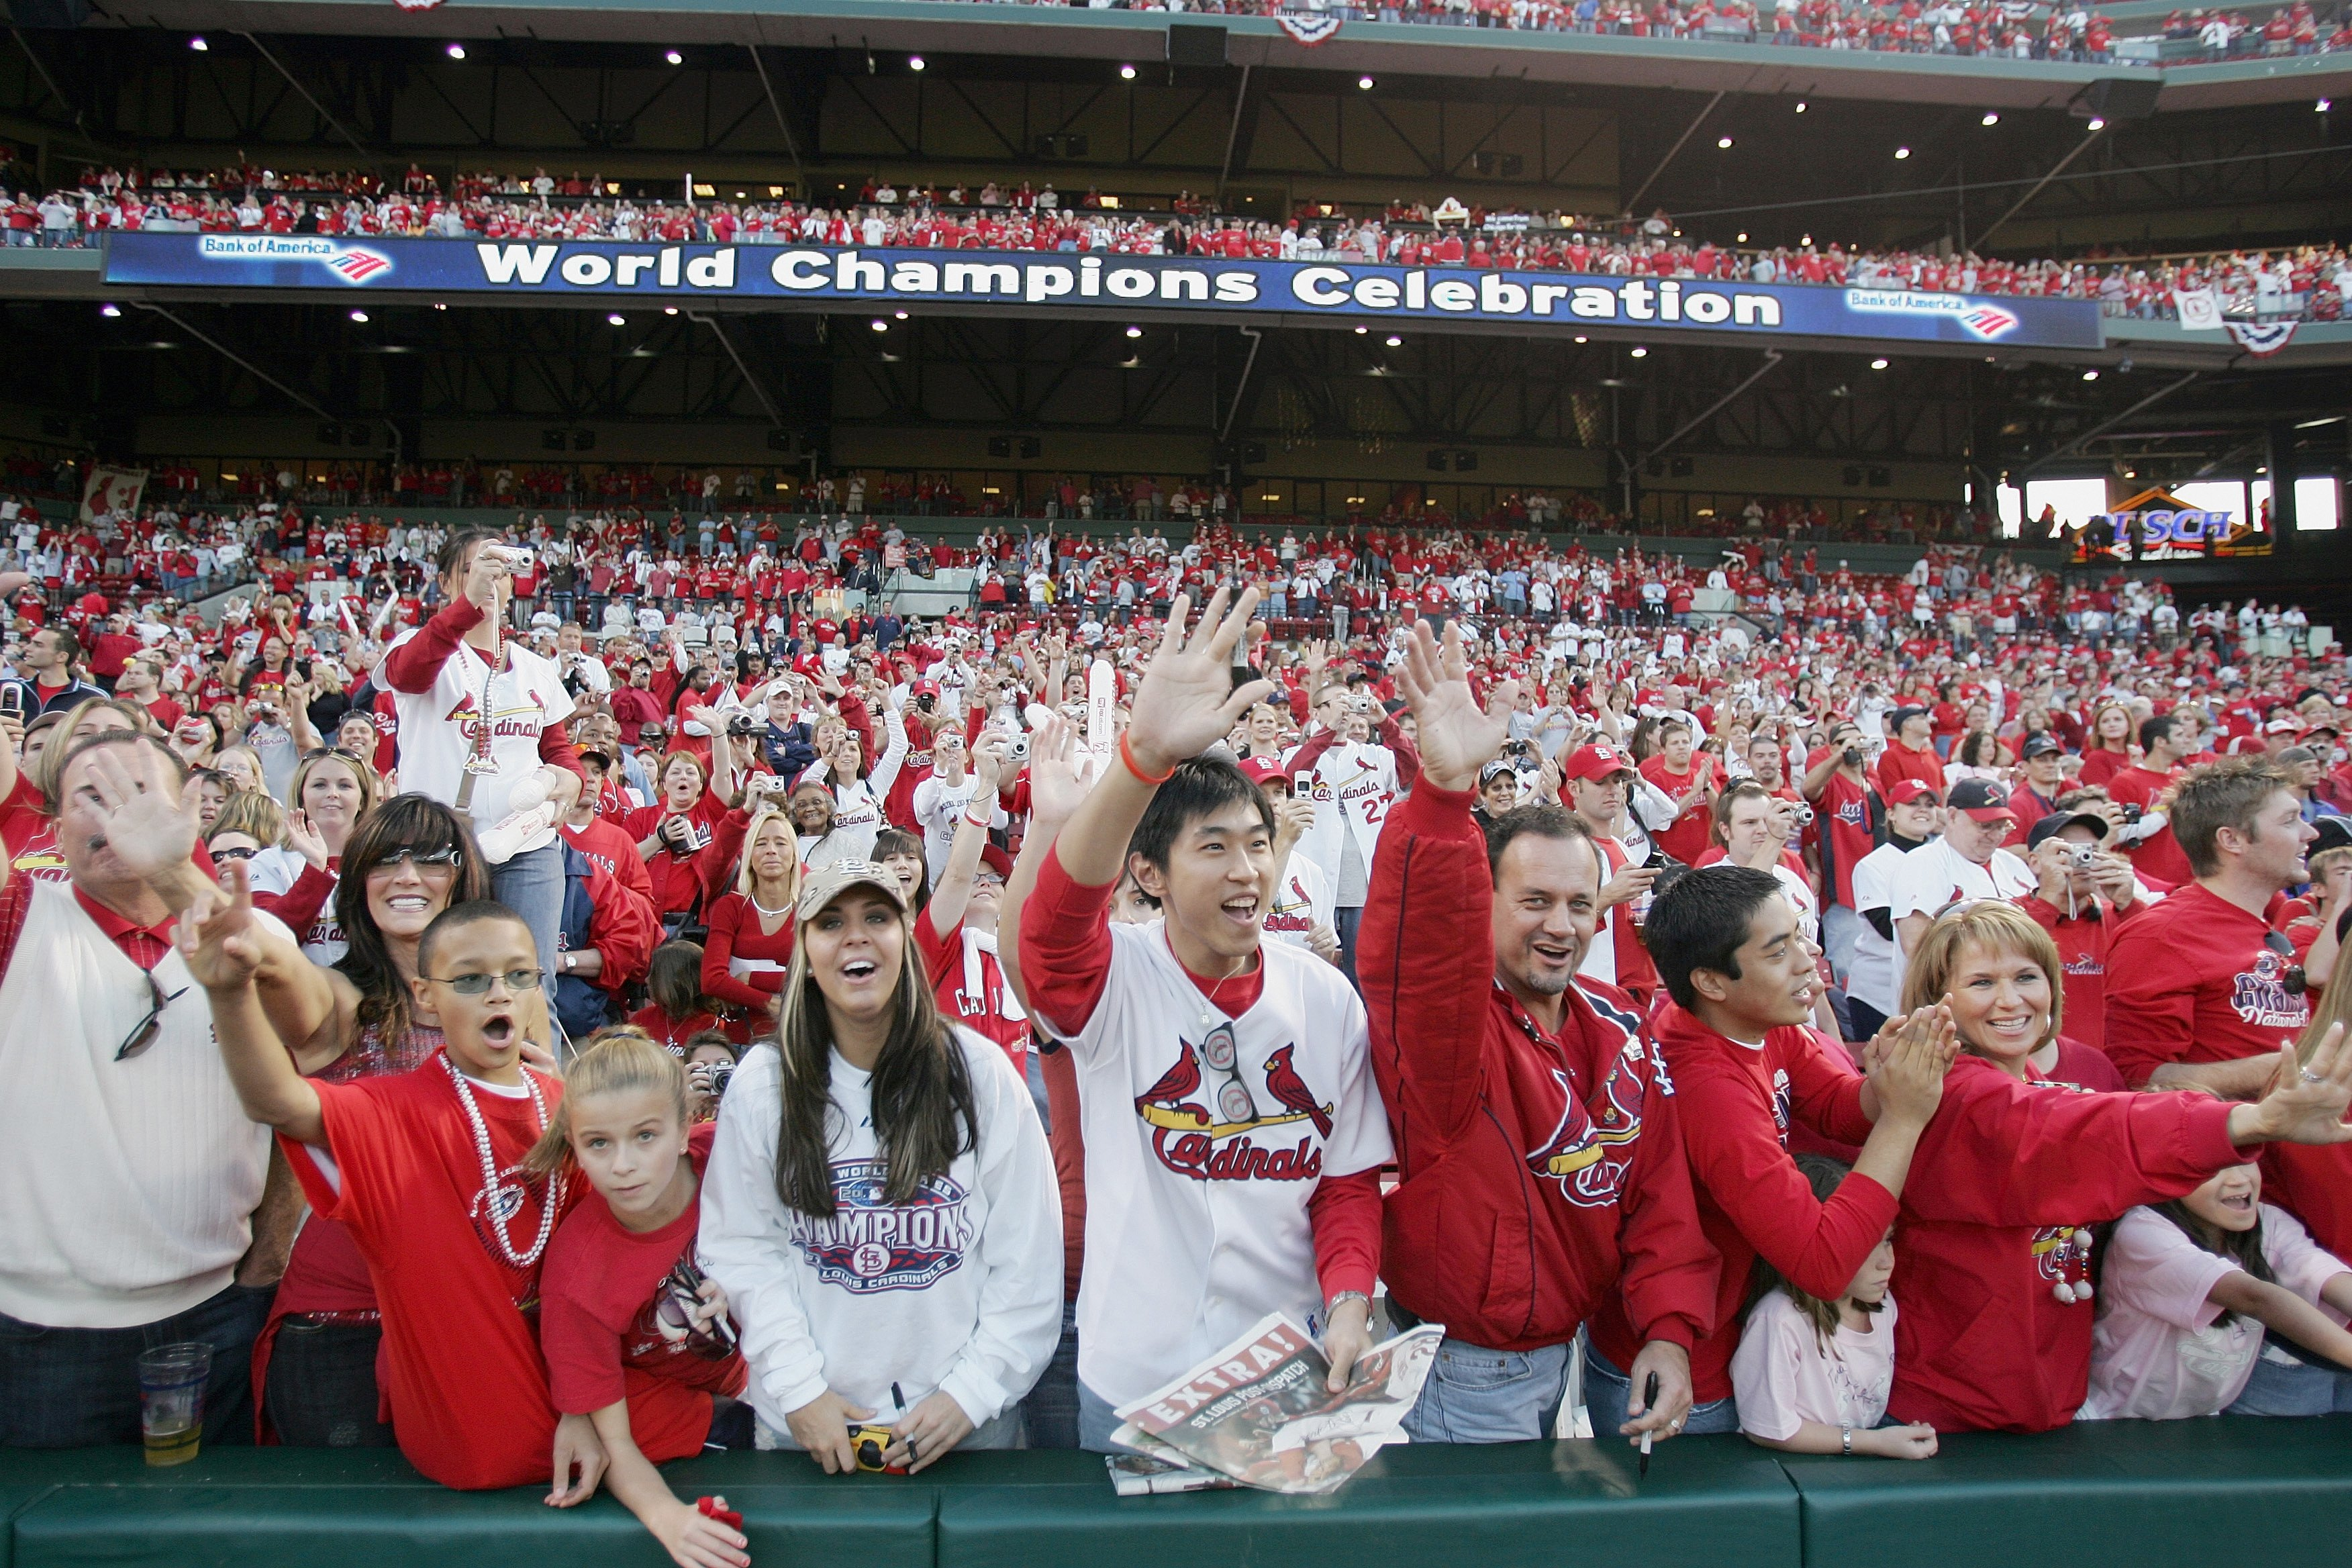 ST. LOUIS - OCTOBER 29:  Fans of the St. Louis Cardinals cheer as the players take the field  during the World Series Victory Parade and Rally on October 29, 2006 at Busch Stadium in St. Louis, Missouri.  (Photo by Elsa/Getty Images)